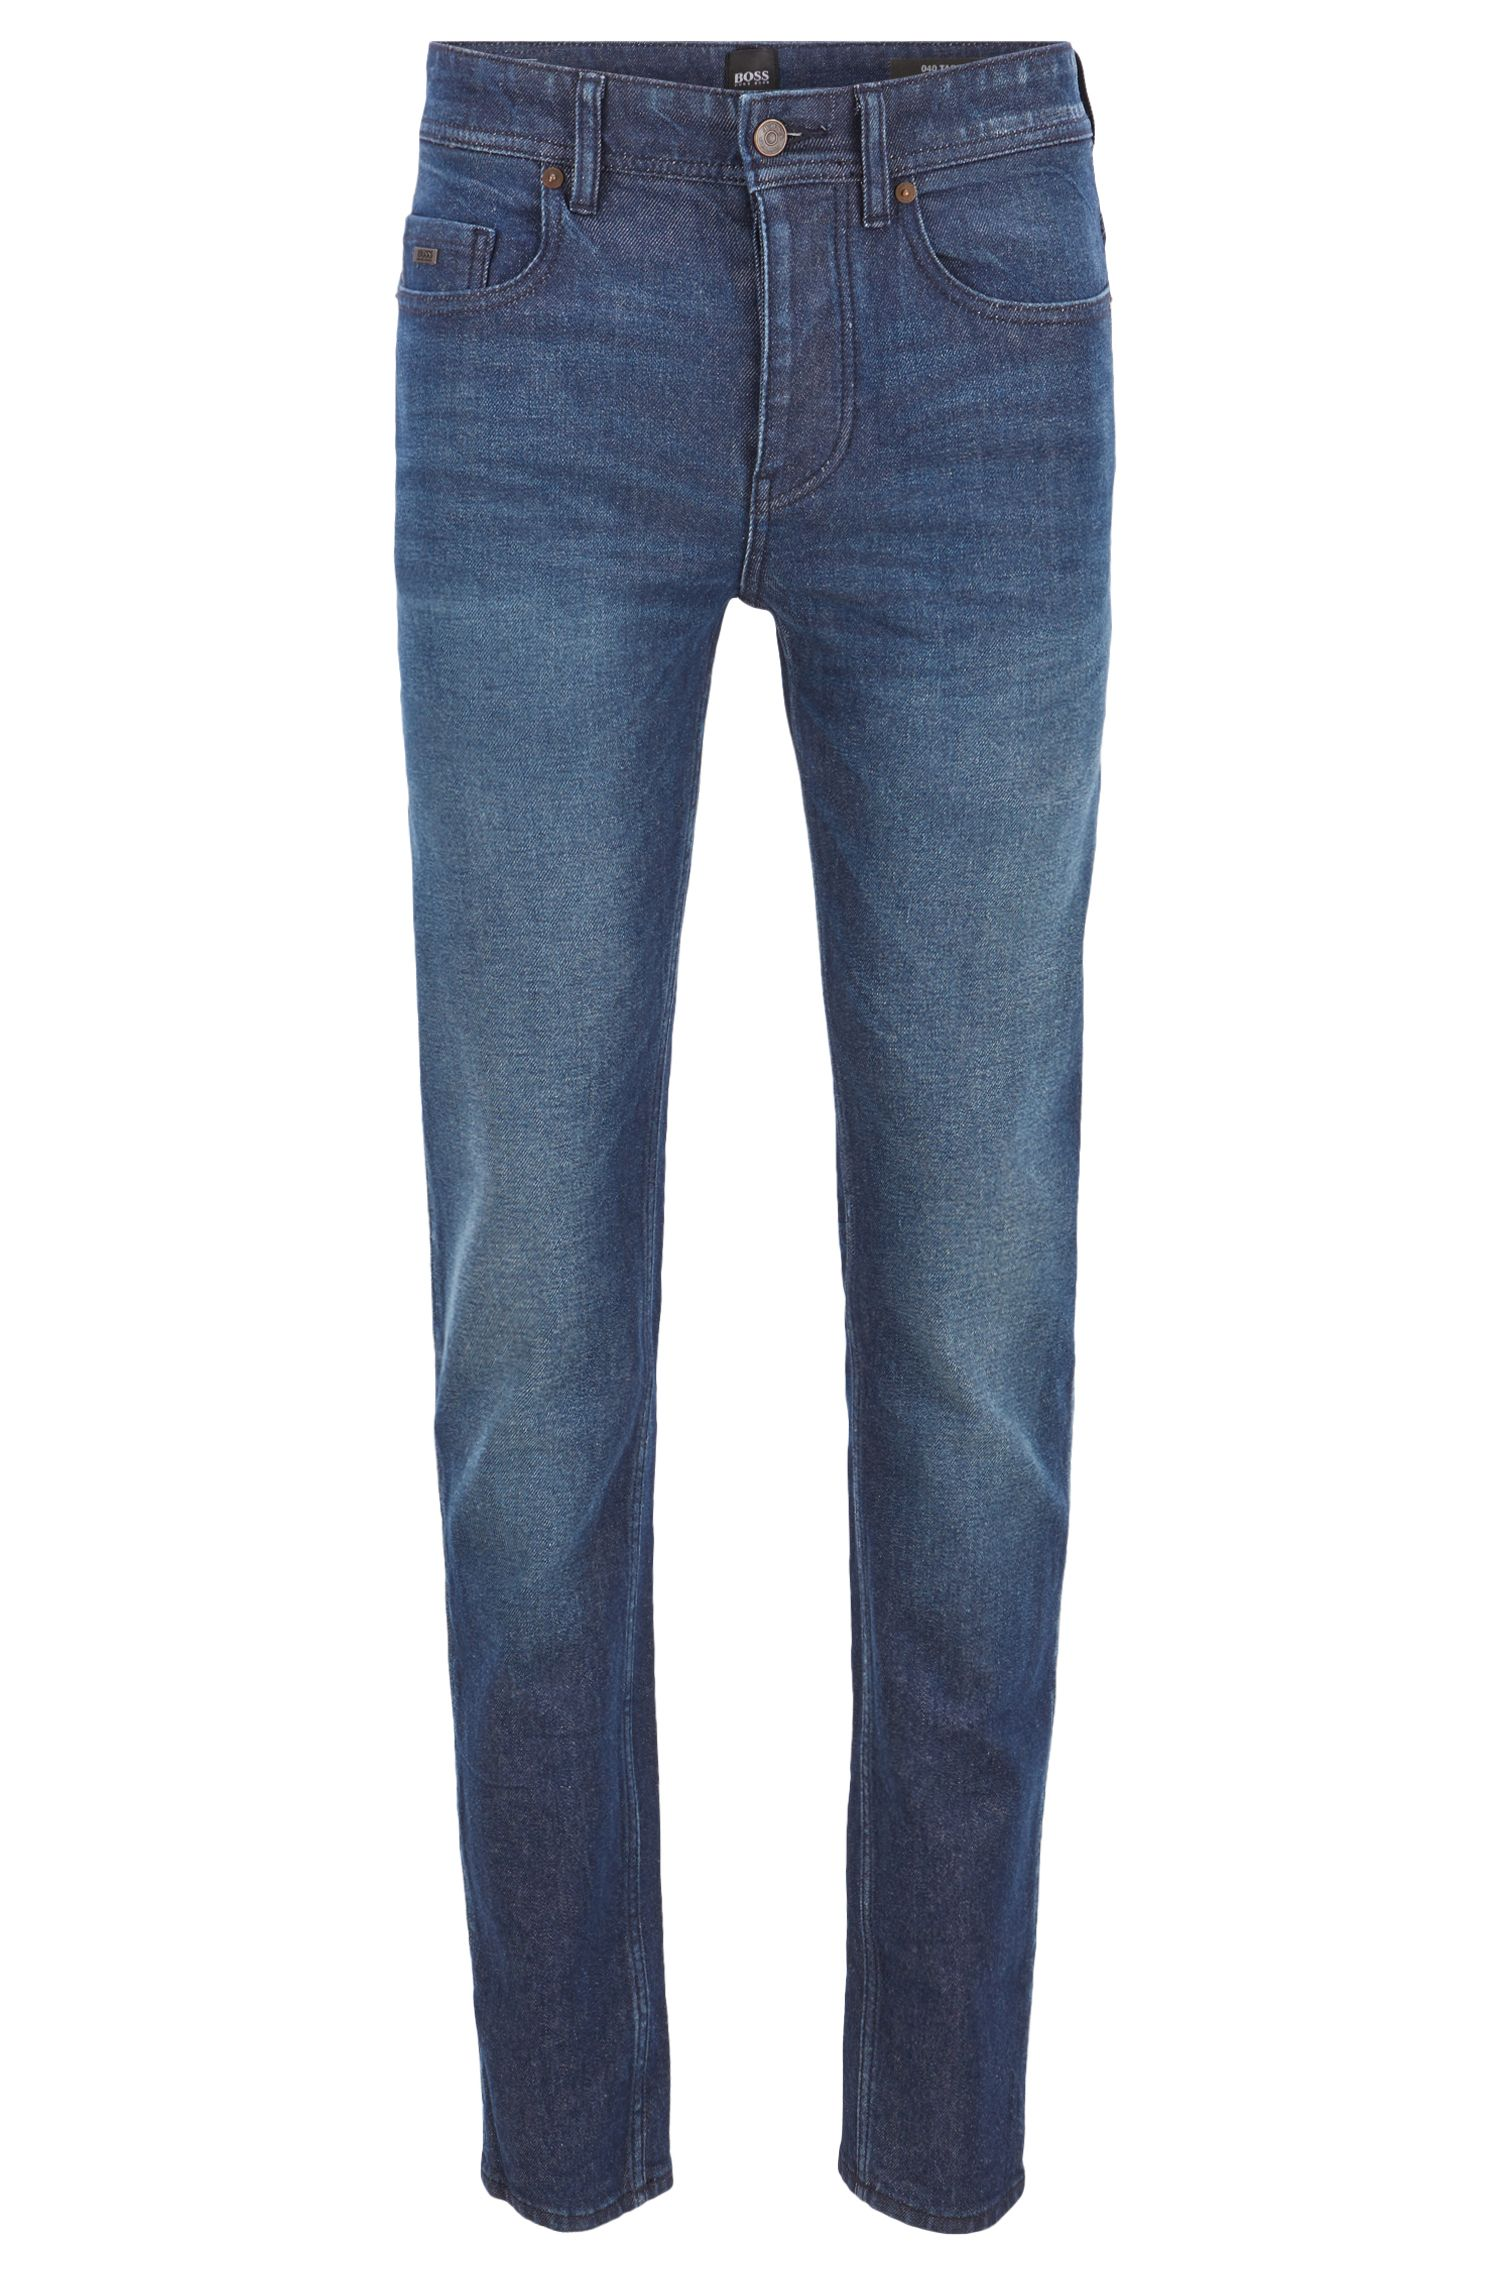 Tapered-Fit Jeans aus Denim mit Vintage-Effekt, Dunkelblau